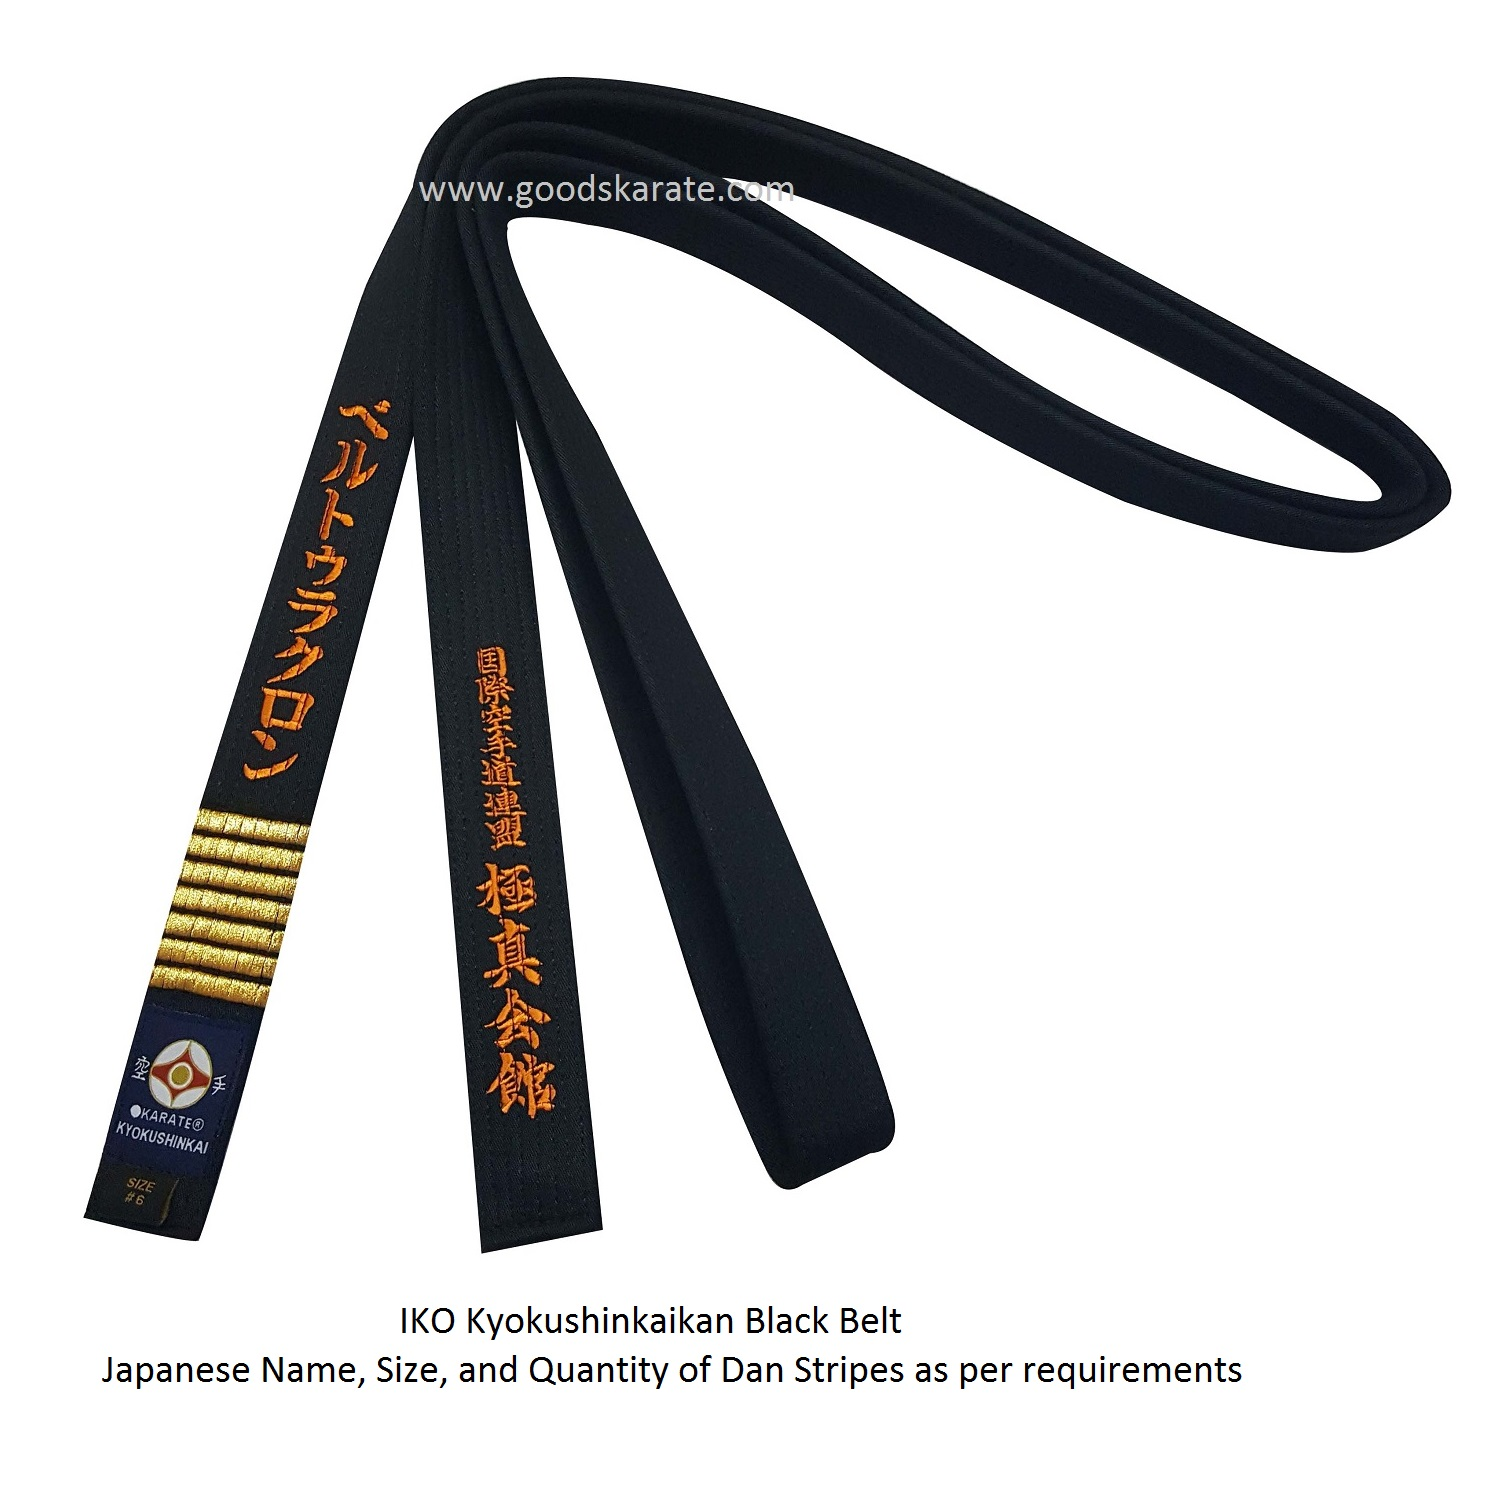 IKO Kyokushinkaikan Black Belt